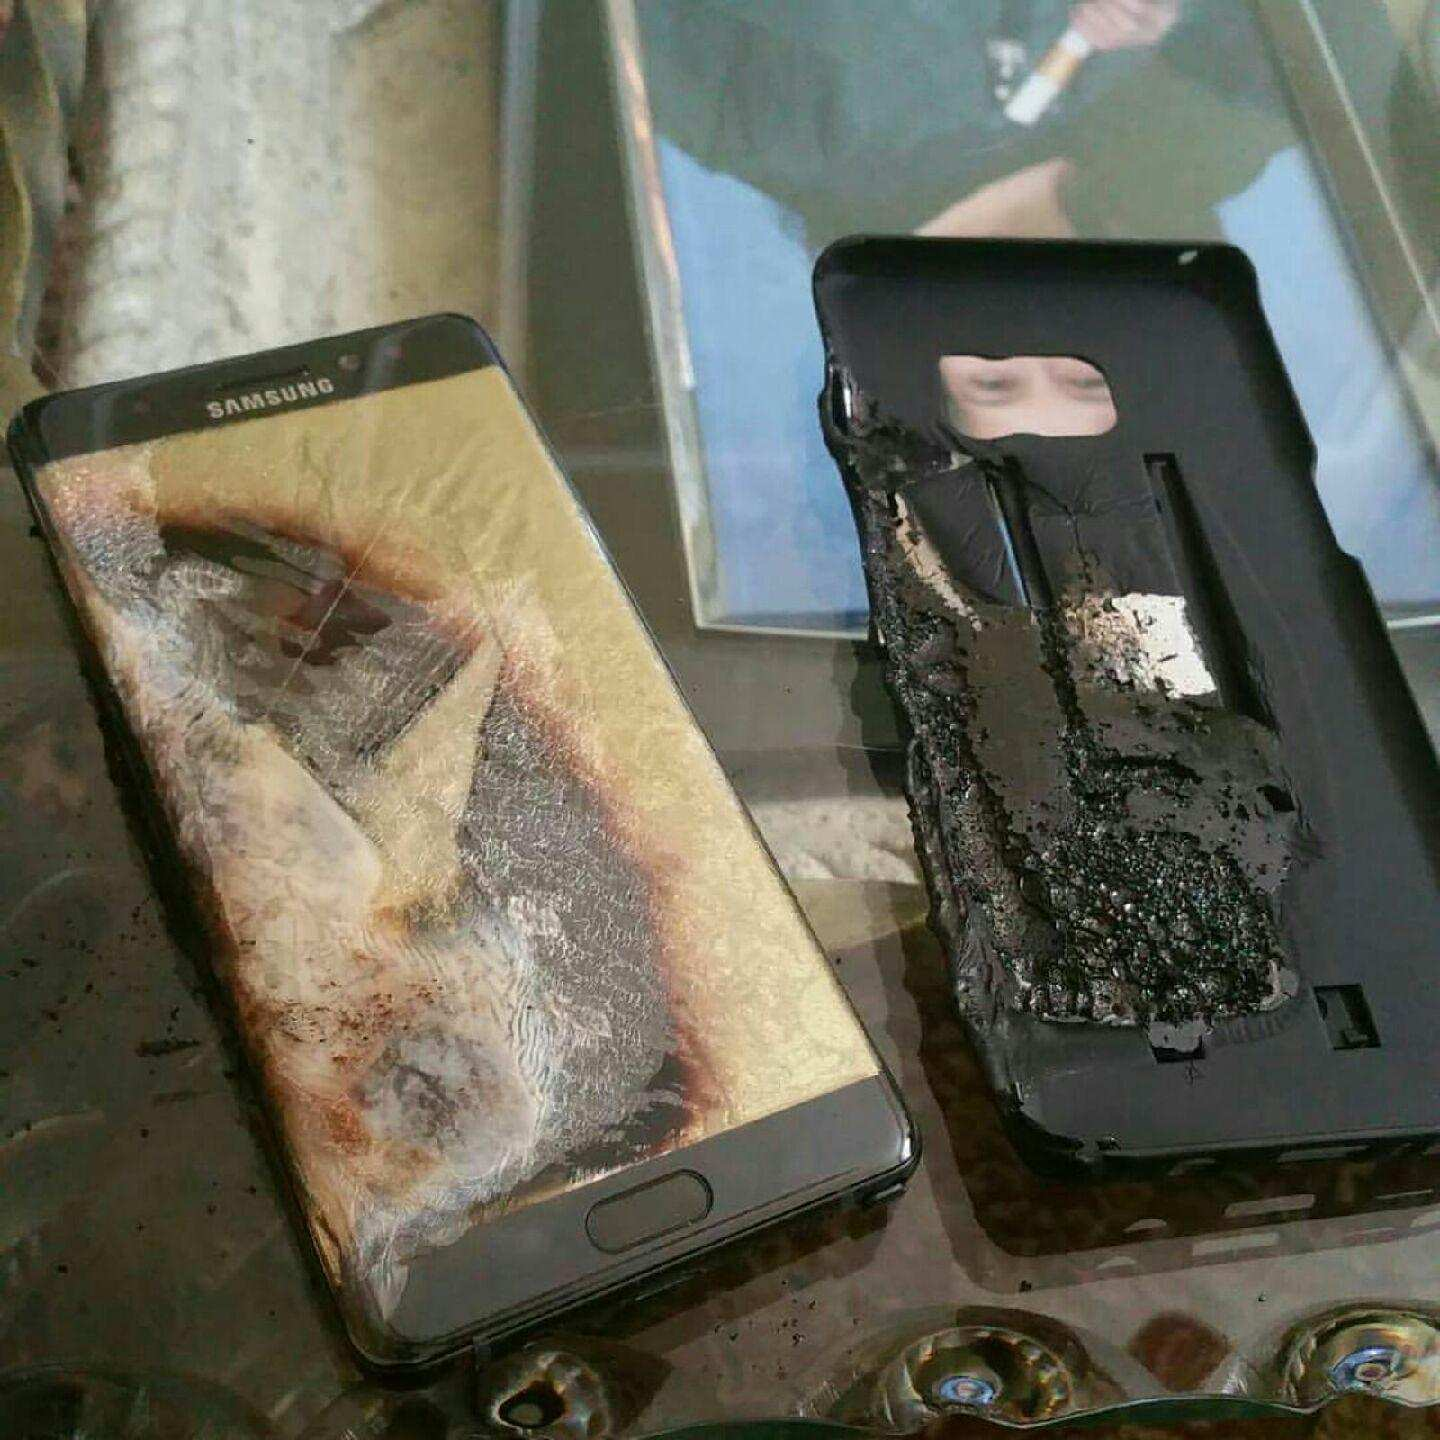 samsung-galaxy-note-7-akku